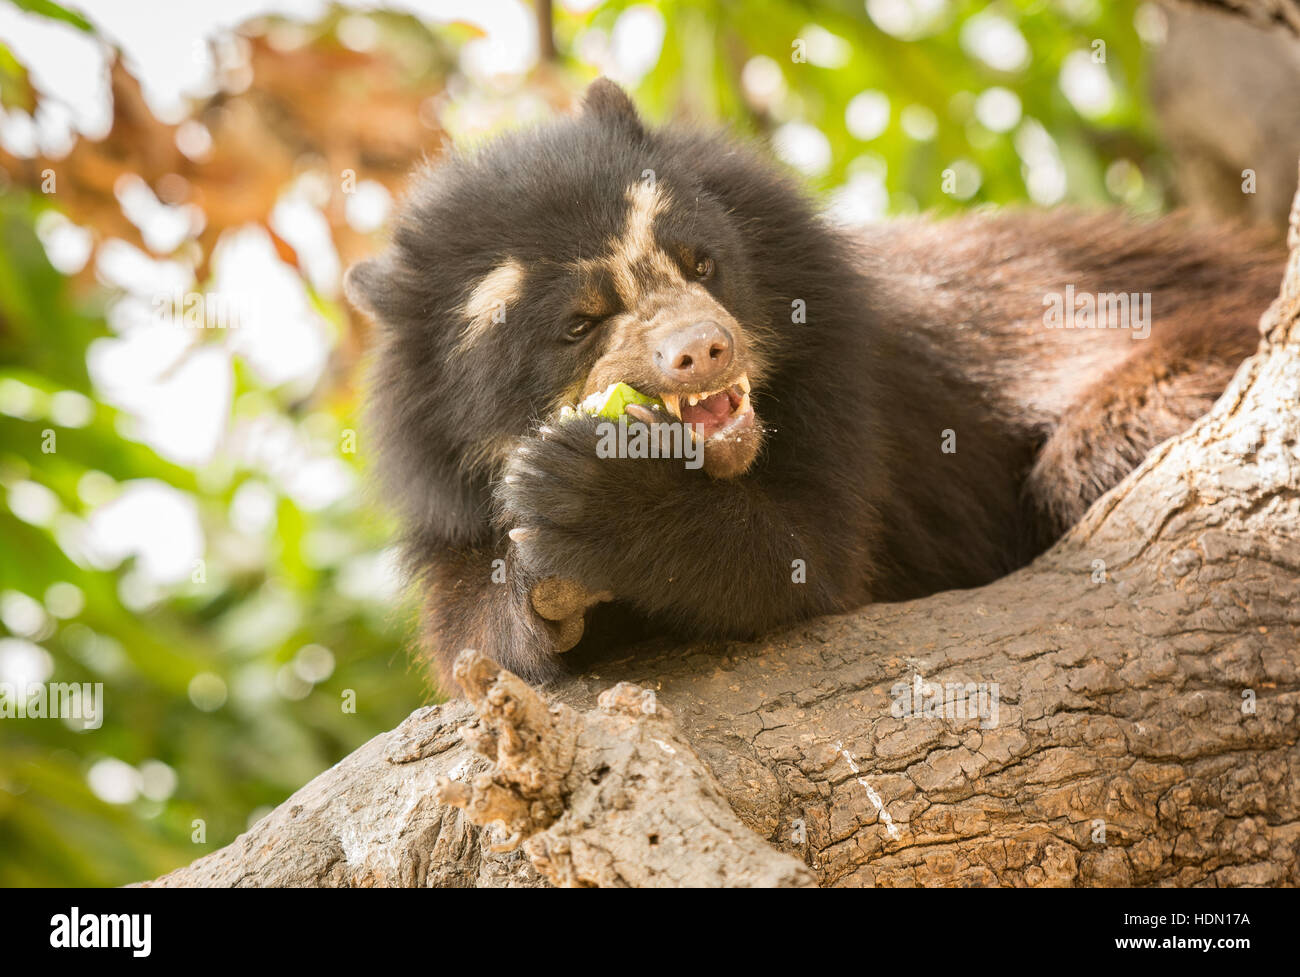 Peruvian Spectacled Bear or Andean Bear (Tremarctos ornatus) eating a mango in a tree at the Chaparri Reserve in Stock Photo